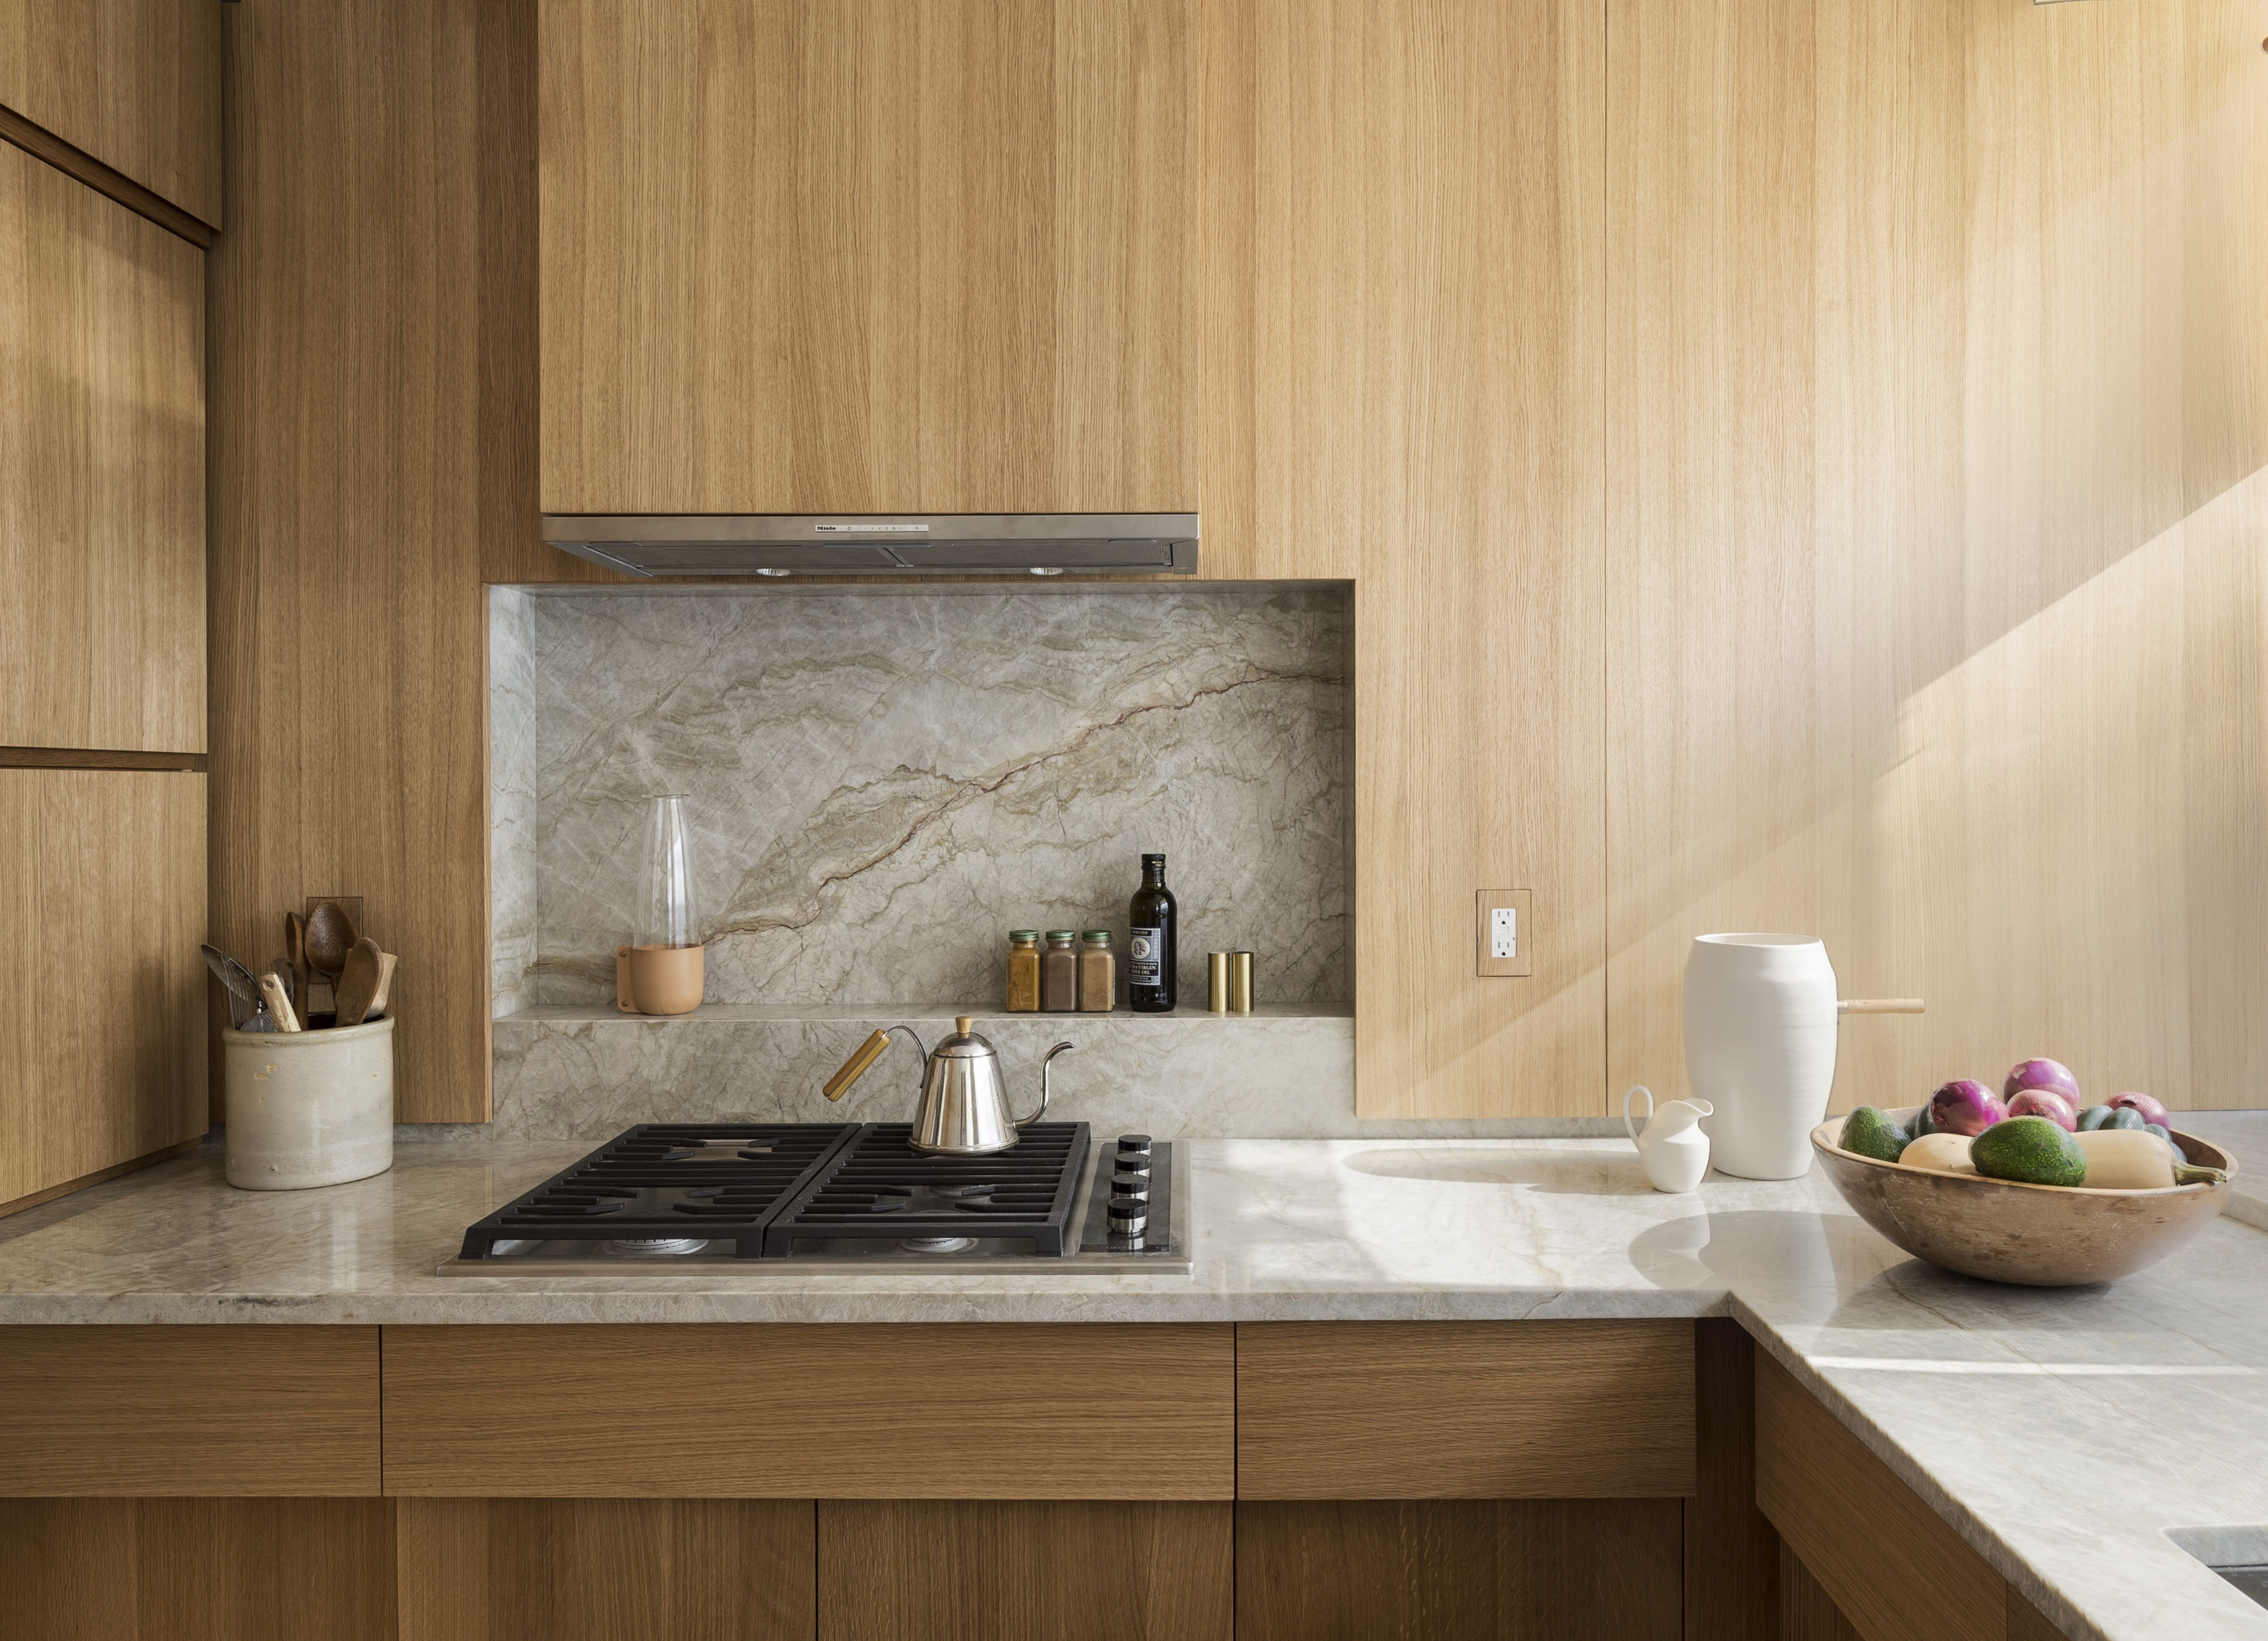 Nyc Compact Kitchen With Custom Stepped Oak Cabinets By Workstead Matthew Williams Photo Kitchen Interior Small Apartment Design Kitchen Remodel